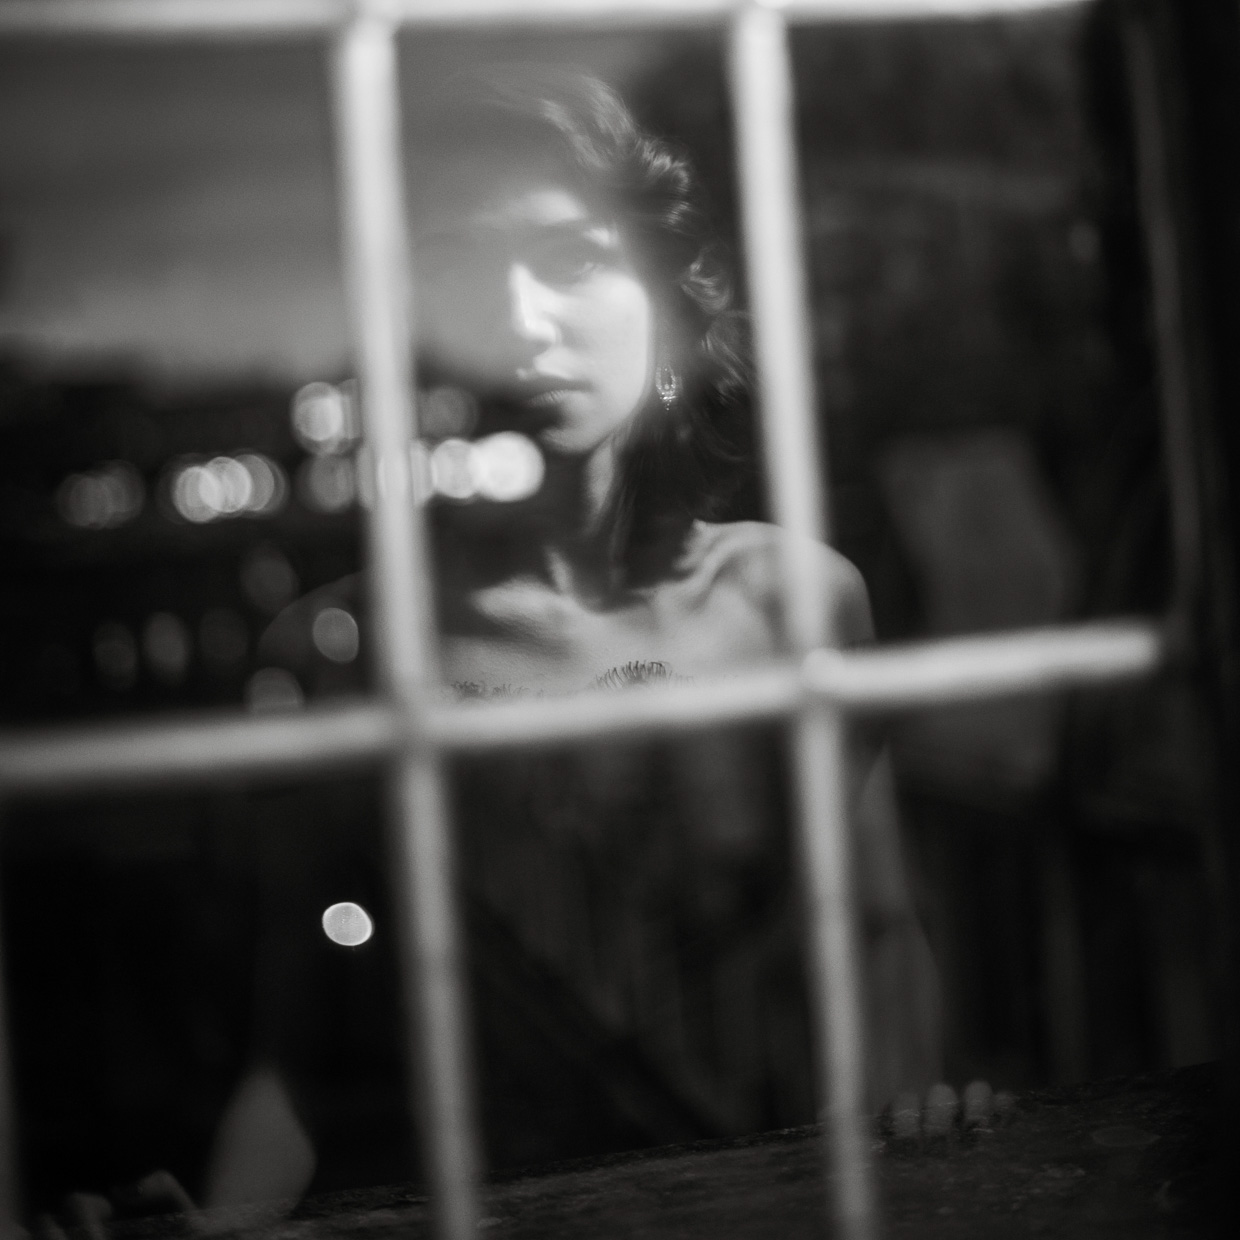 Reflection in the window of Hannah Taylor